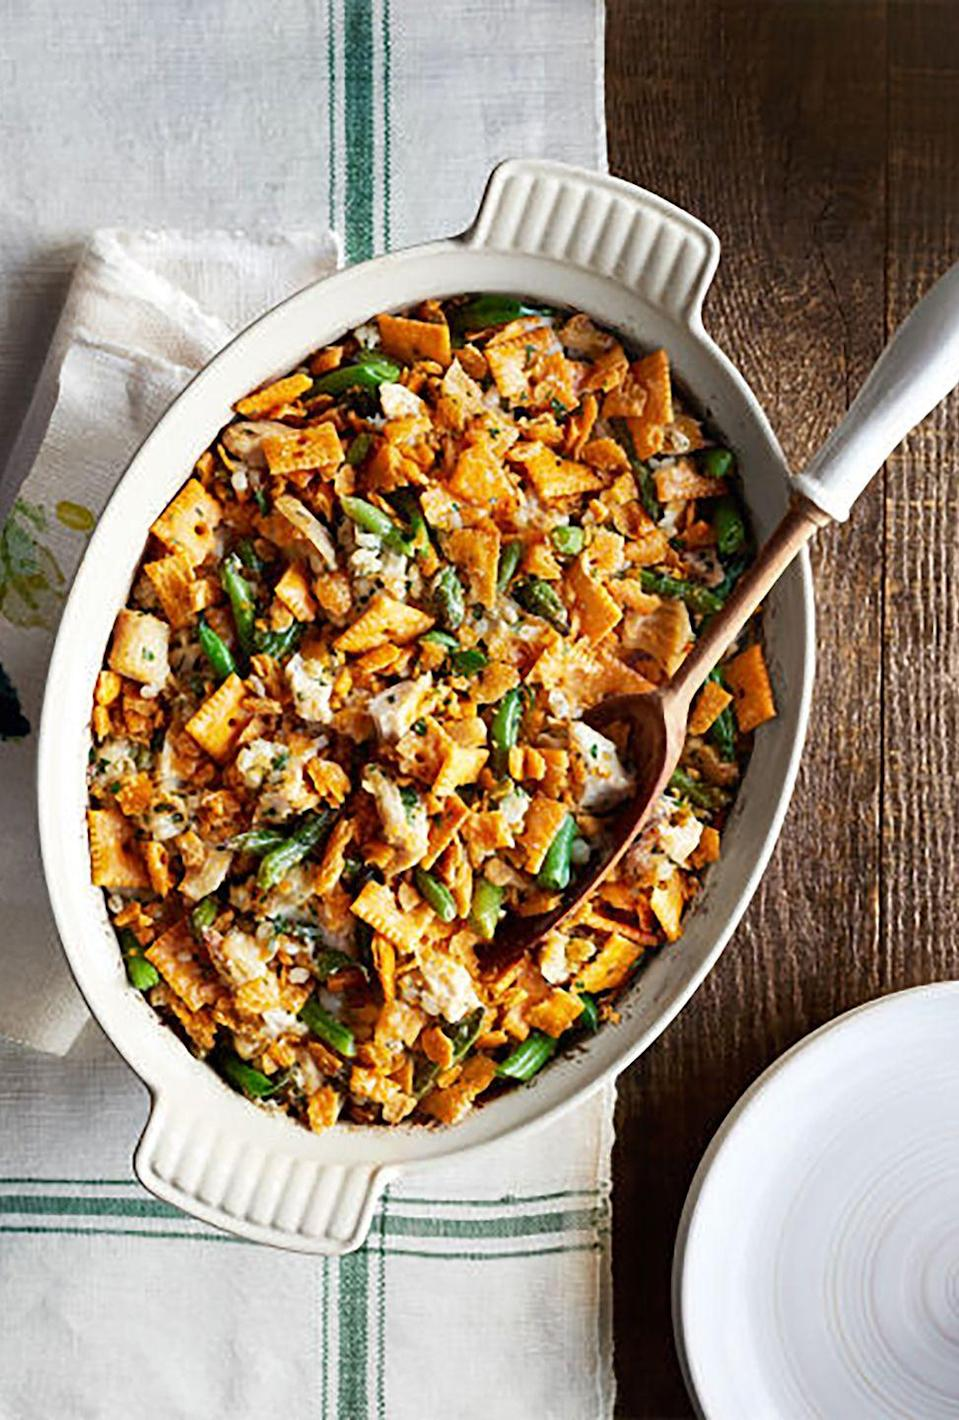 """<p>With creamy chicken and green beans topped with iconic cheese crackers, this dish is a nostalgic nod to Nanas everywhere.</p><p><strong><a href=""""https://www.countryliving.com/food-drinks/recipes/a36147/green-bean-barley-chicken-casserole/"""" rel=""""nofollow noopener"""" target=""""_blank"""" data-ylk=""""slk:Get the recipe"""" class=""""link rapid-noclick-resp"""">Get the recipe</a>.</strong></p><p><strong><a class=""""link rapid-noclick-resp"""" href=""""https://www.amazon.com/Bakeware-Krokori-Rectangular-Aquamarine-Rectangula/dp/B074Z5X8MT/?tag=syn-yahoo-20&ascsubtag=%5Bartid%7C10050.g.3726%5Bsrc%7Cyahoo-us"""" rel=""""nofollow noopener"""" target=""""_blank"""" data-ylk=""""slk:SHOP BAKING DISHES"""">SHOP BAKING DISHES</a><br></strong></p>"""